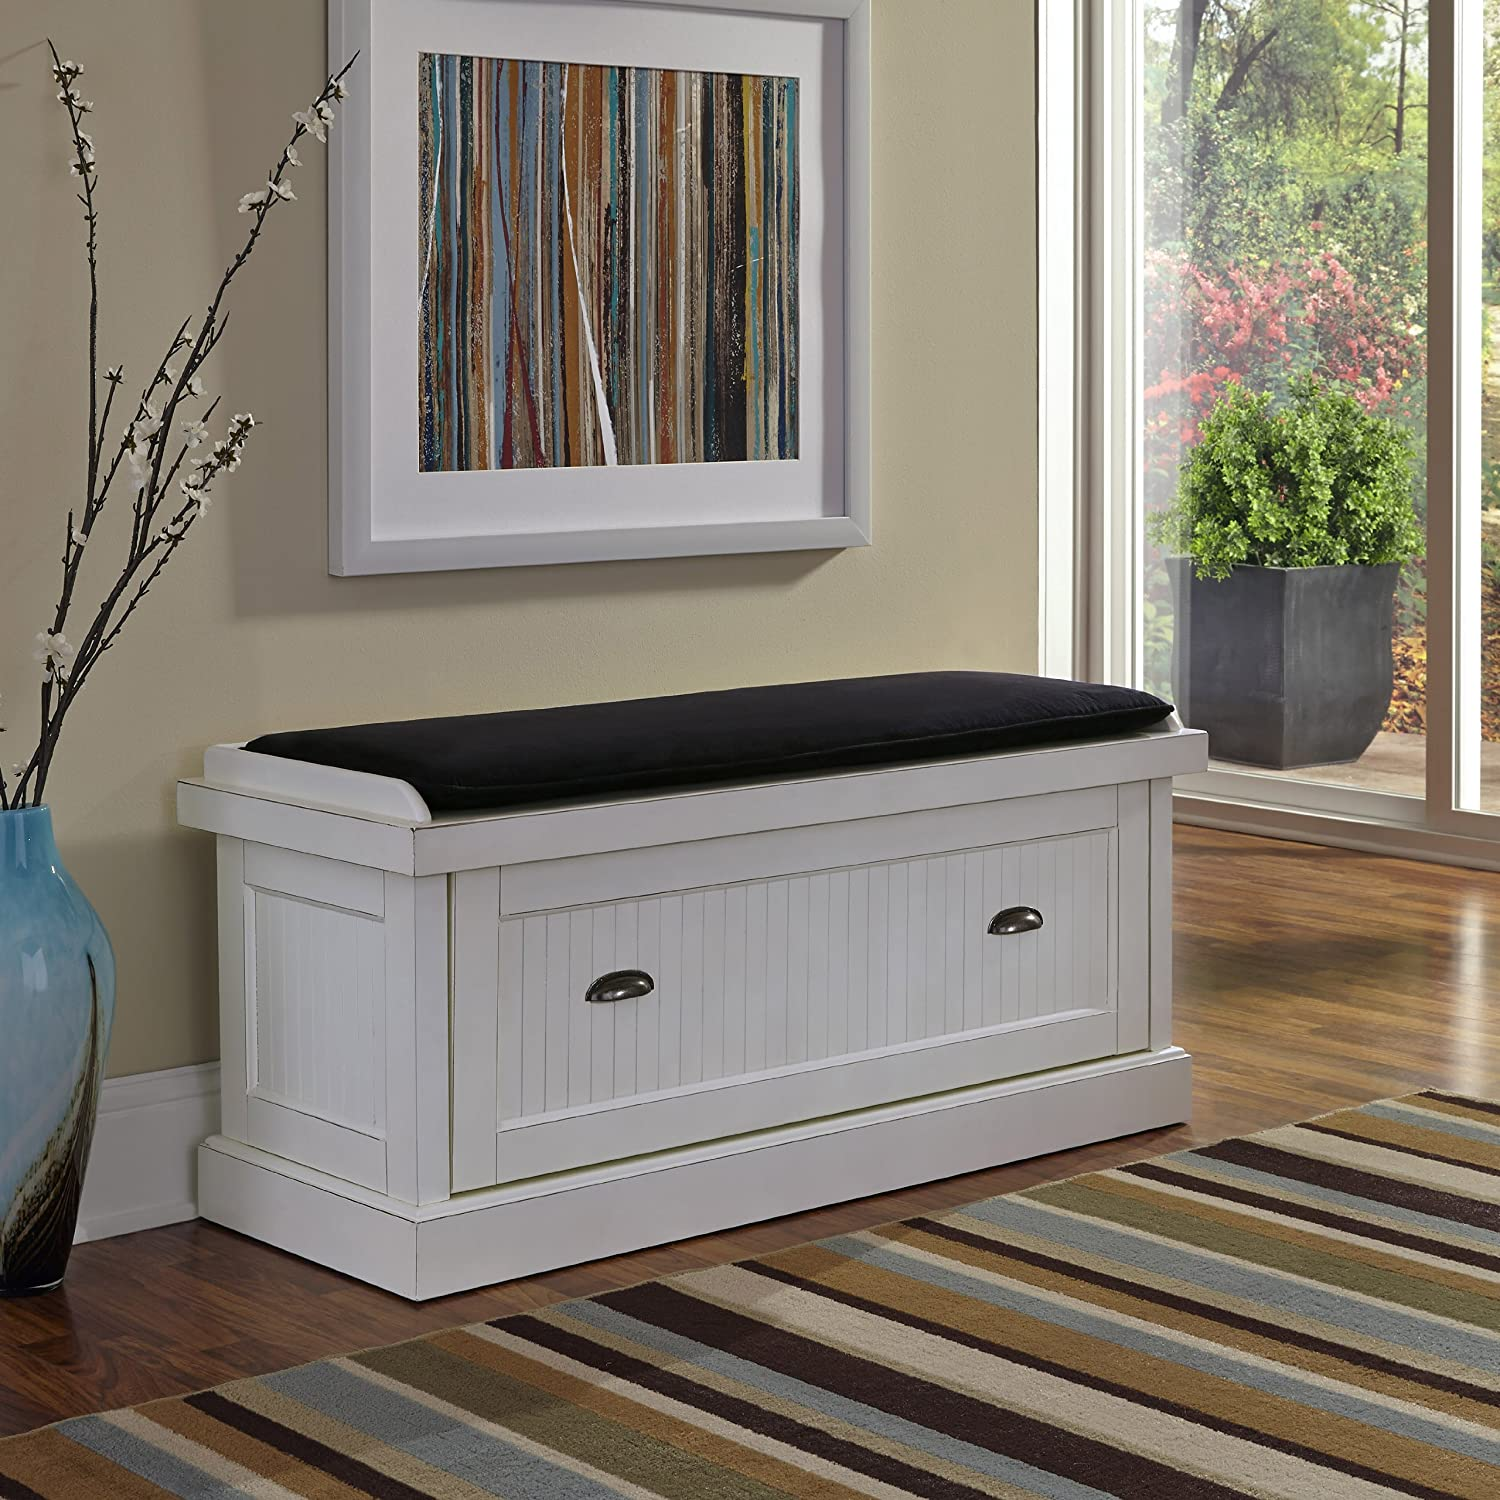 nook breakfast weekender storage entertain unit project and projects padded decorate hero bench seat